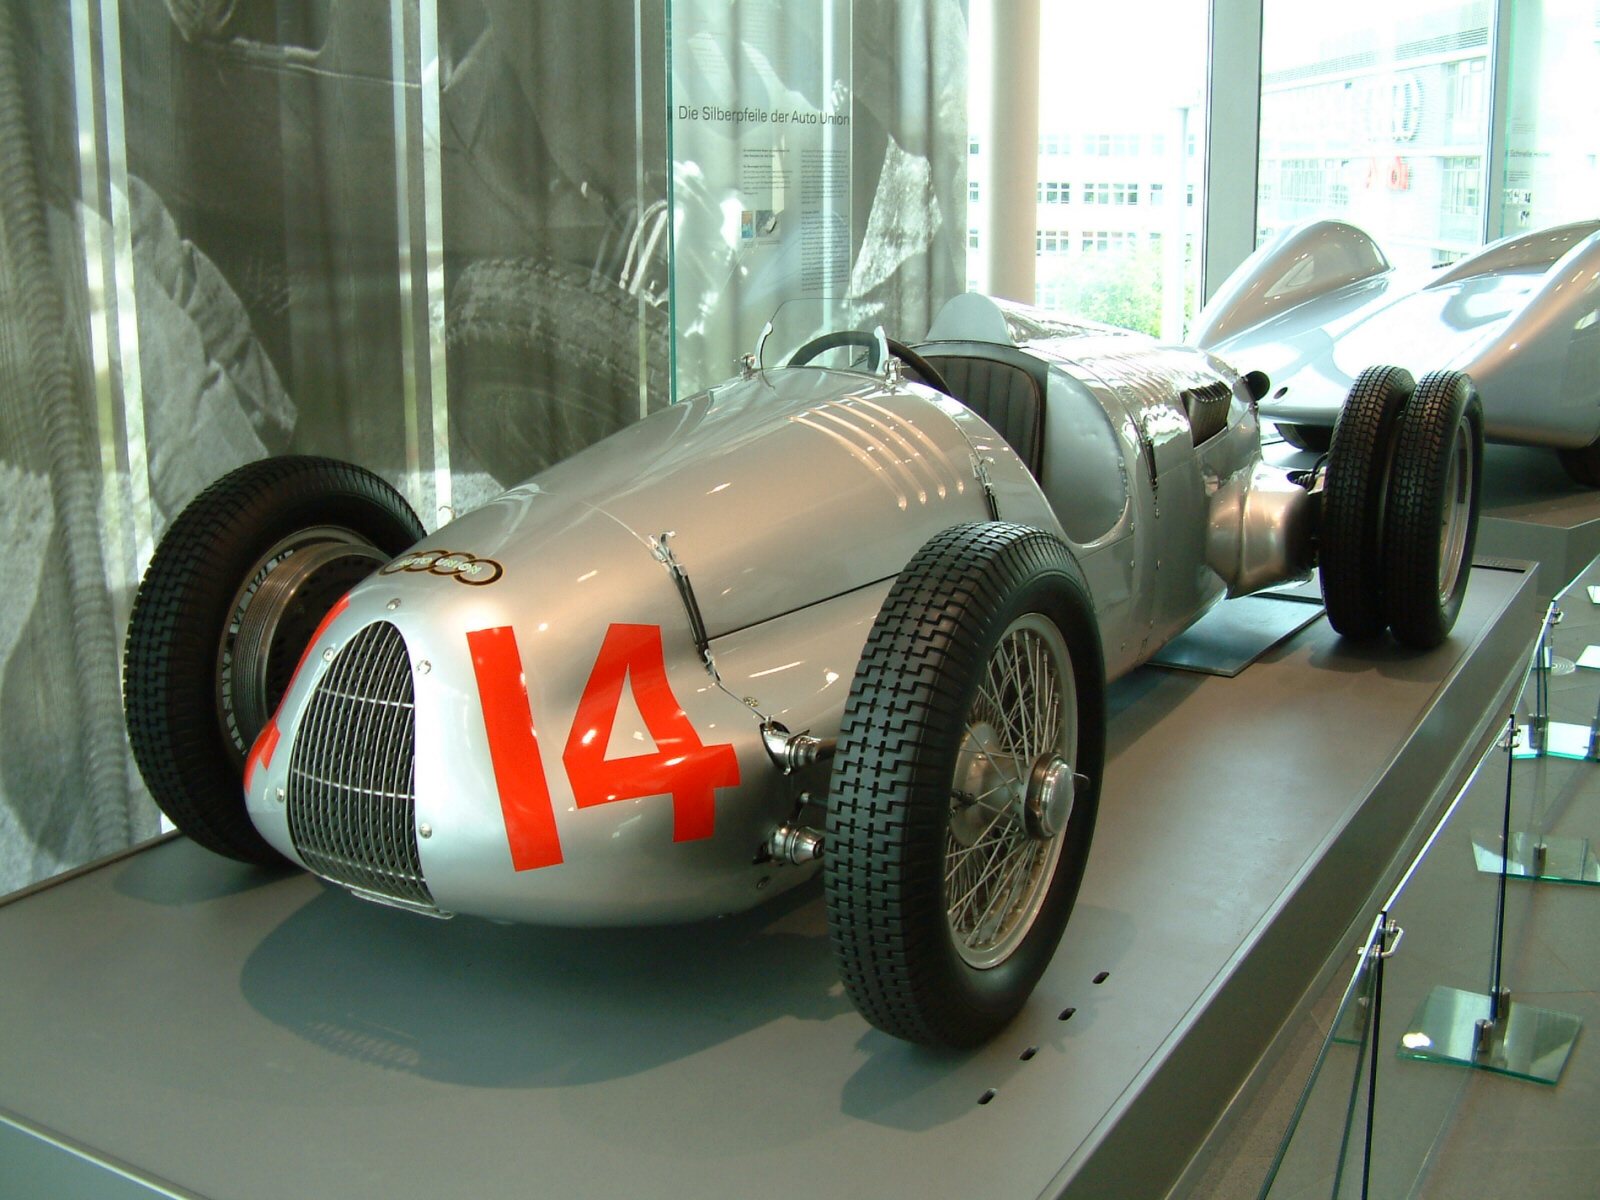 Auto union type photo - 6